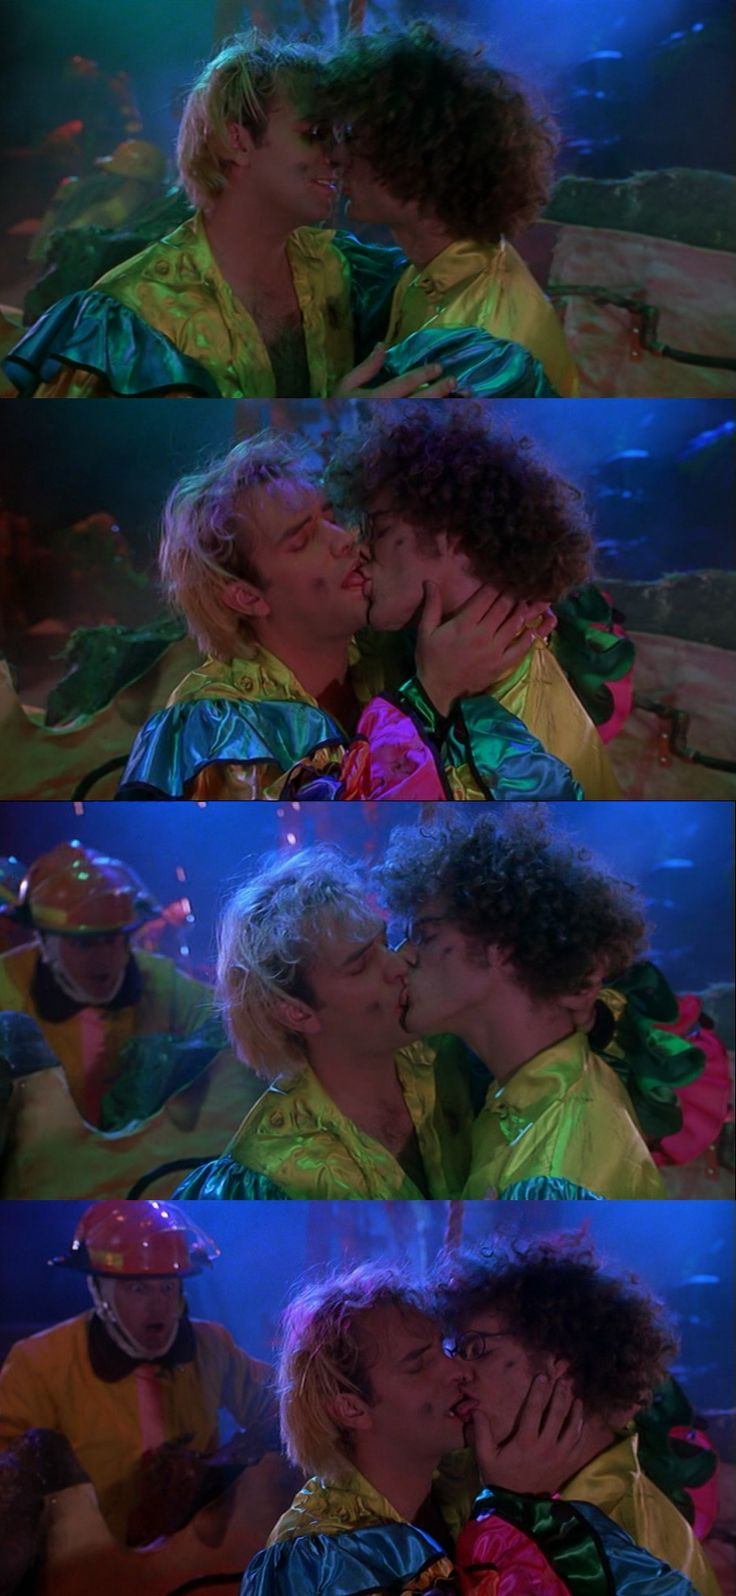 here, have trey parker and matt stone making out. baseketball